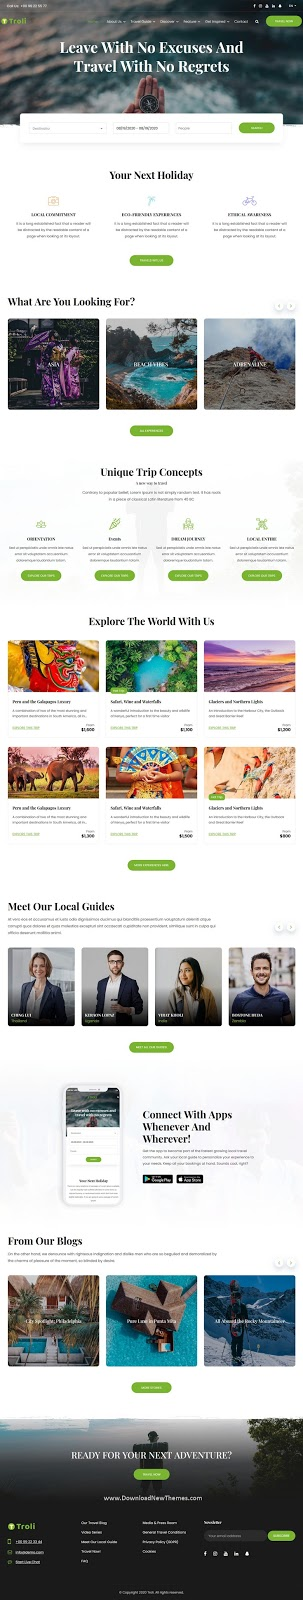 Troli - Tour and Travel Guide HTML5 Template